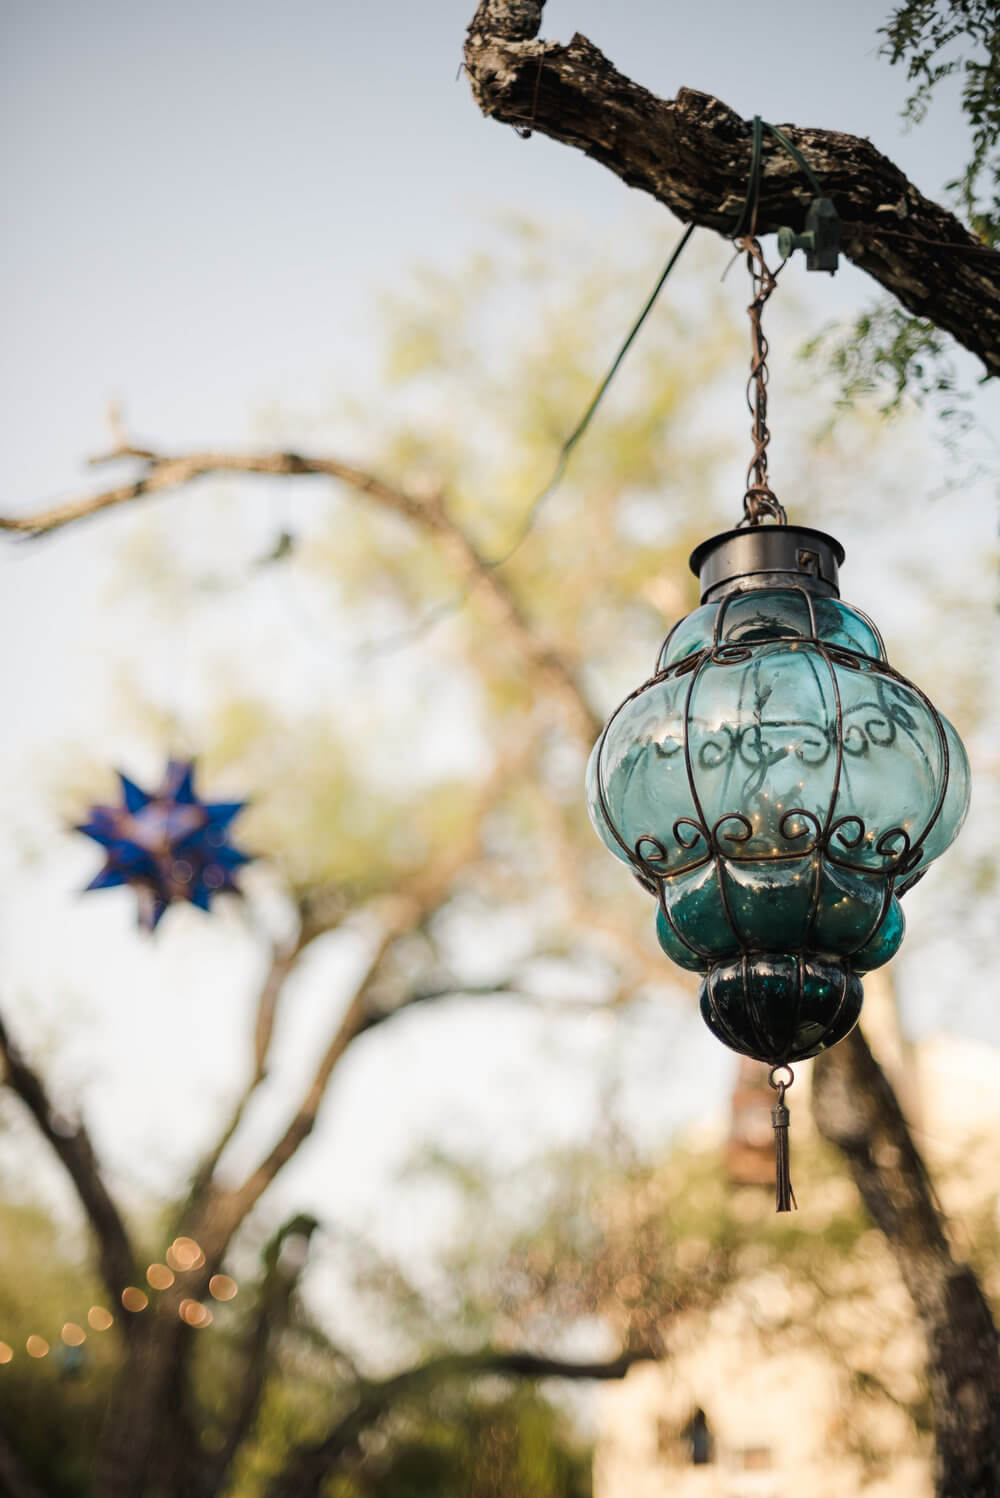 French country wedding inspiration blue glass lanterns hanging from the tree branches.